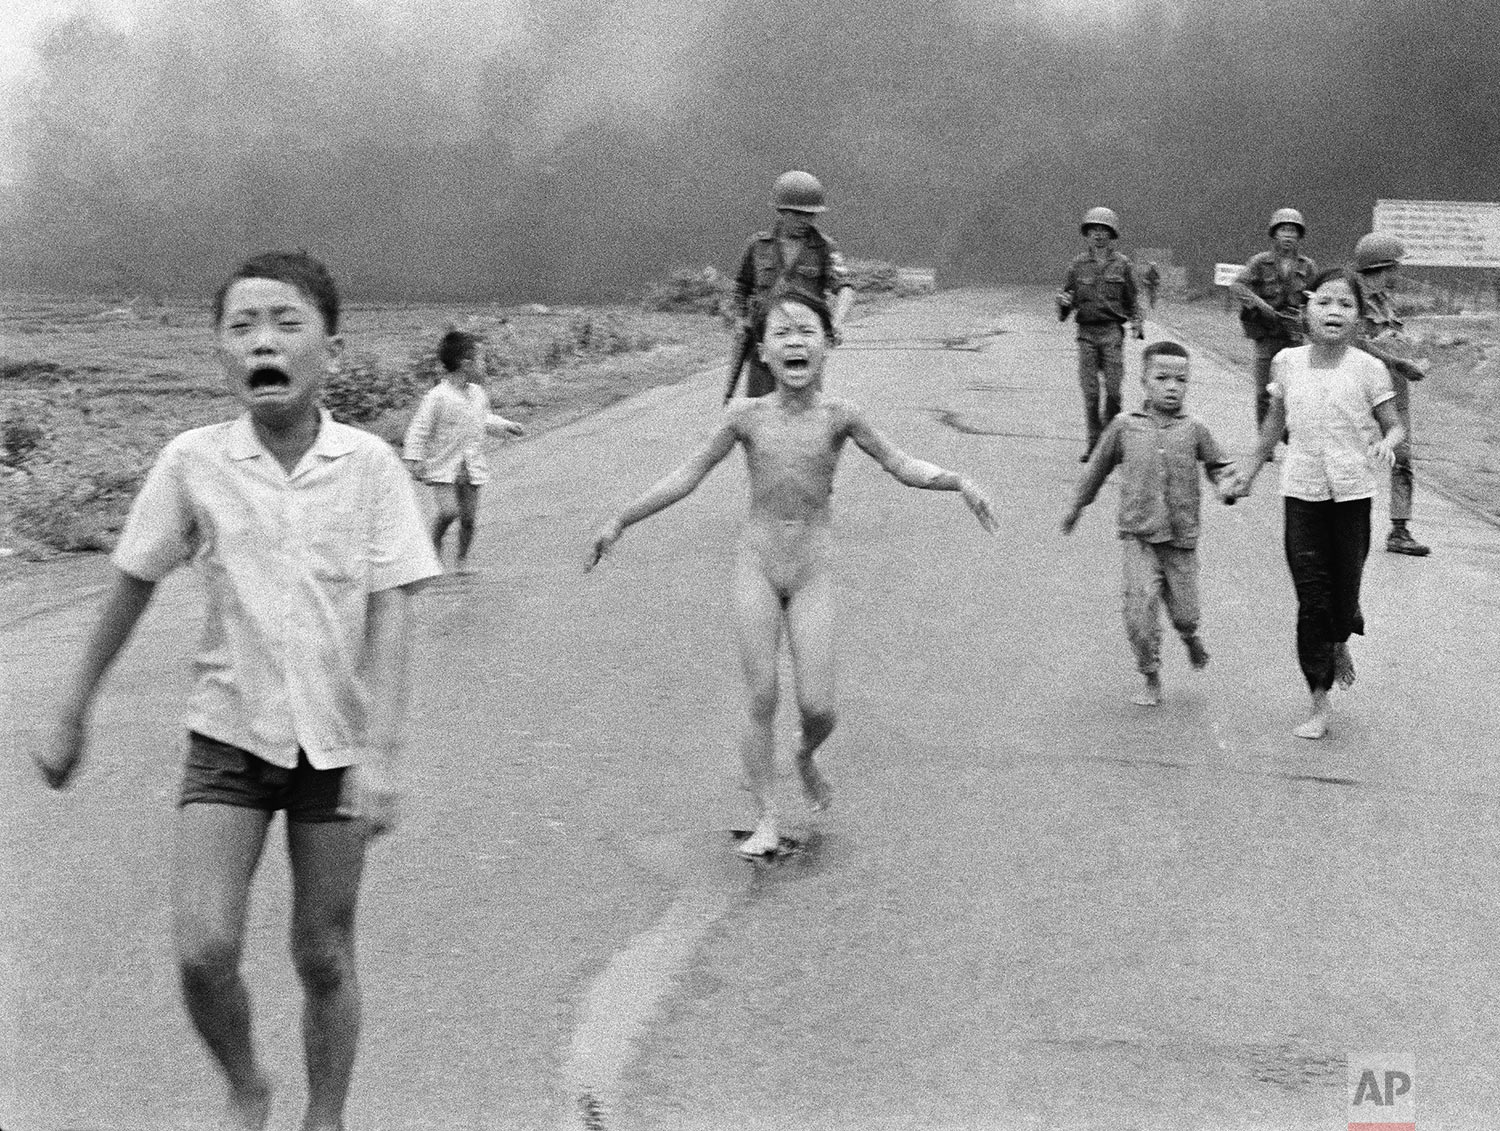 South Vietnamese forces follow after terrified children, including 9-year-old Kim Phuc, center, as they run down Route 1 near Trang Bang after an aerial napalm attack on suspected Viet Cong hiding places on June 8, 1972. (AP Photo/Nick Ut)